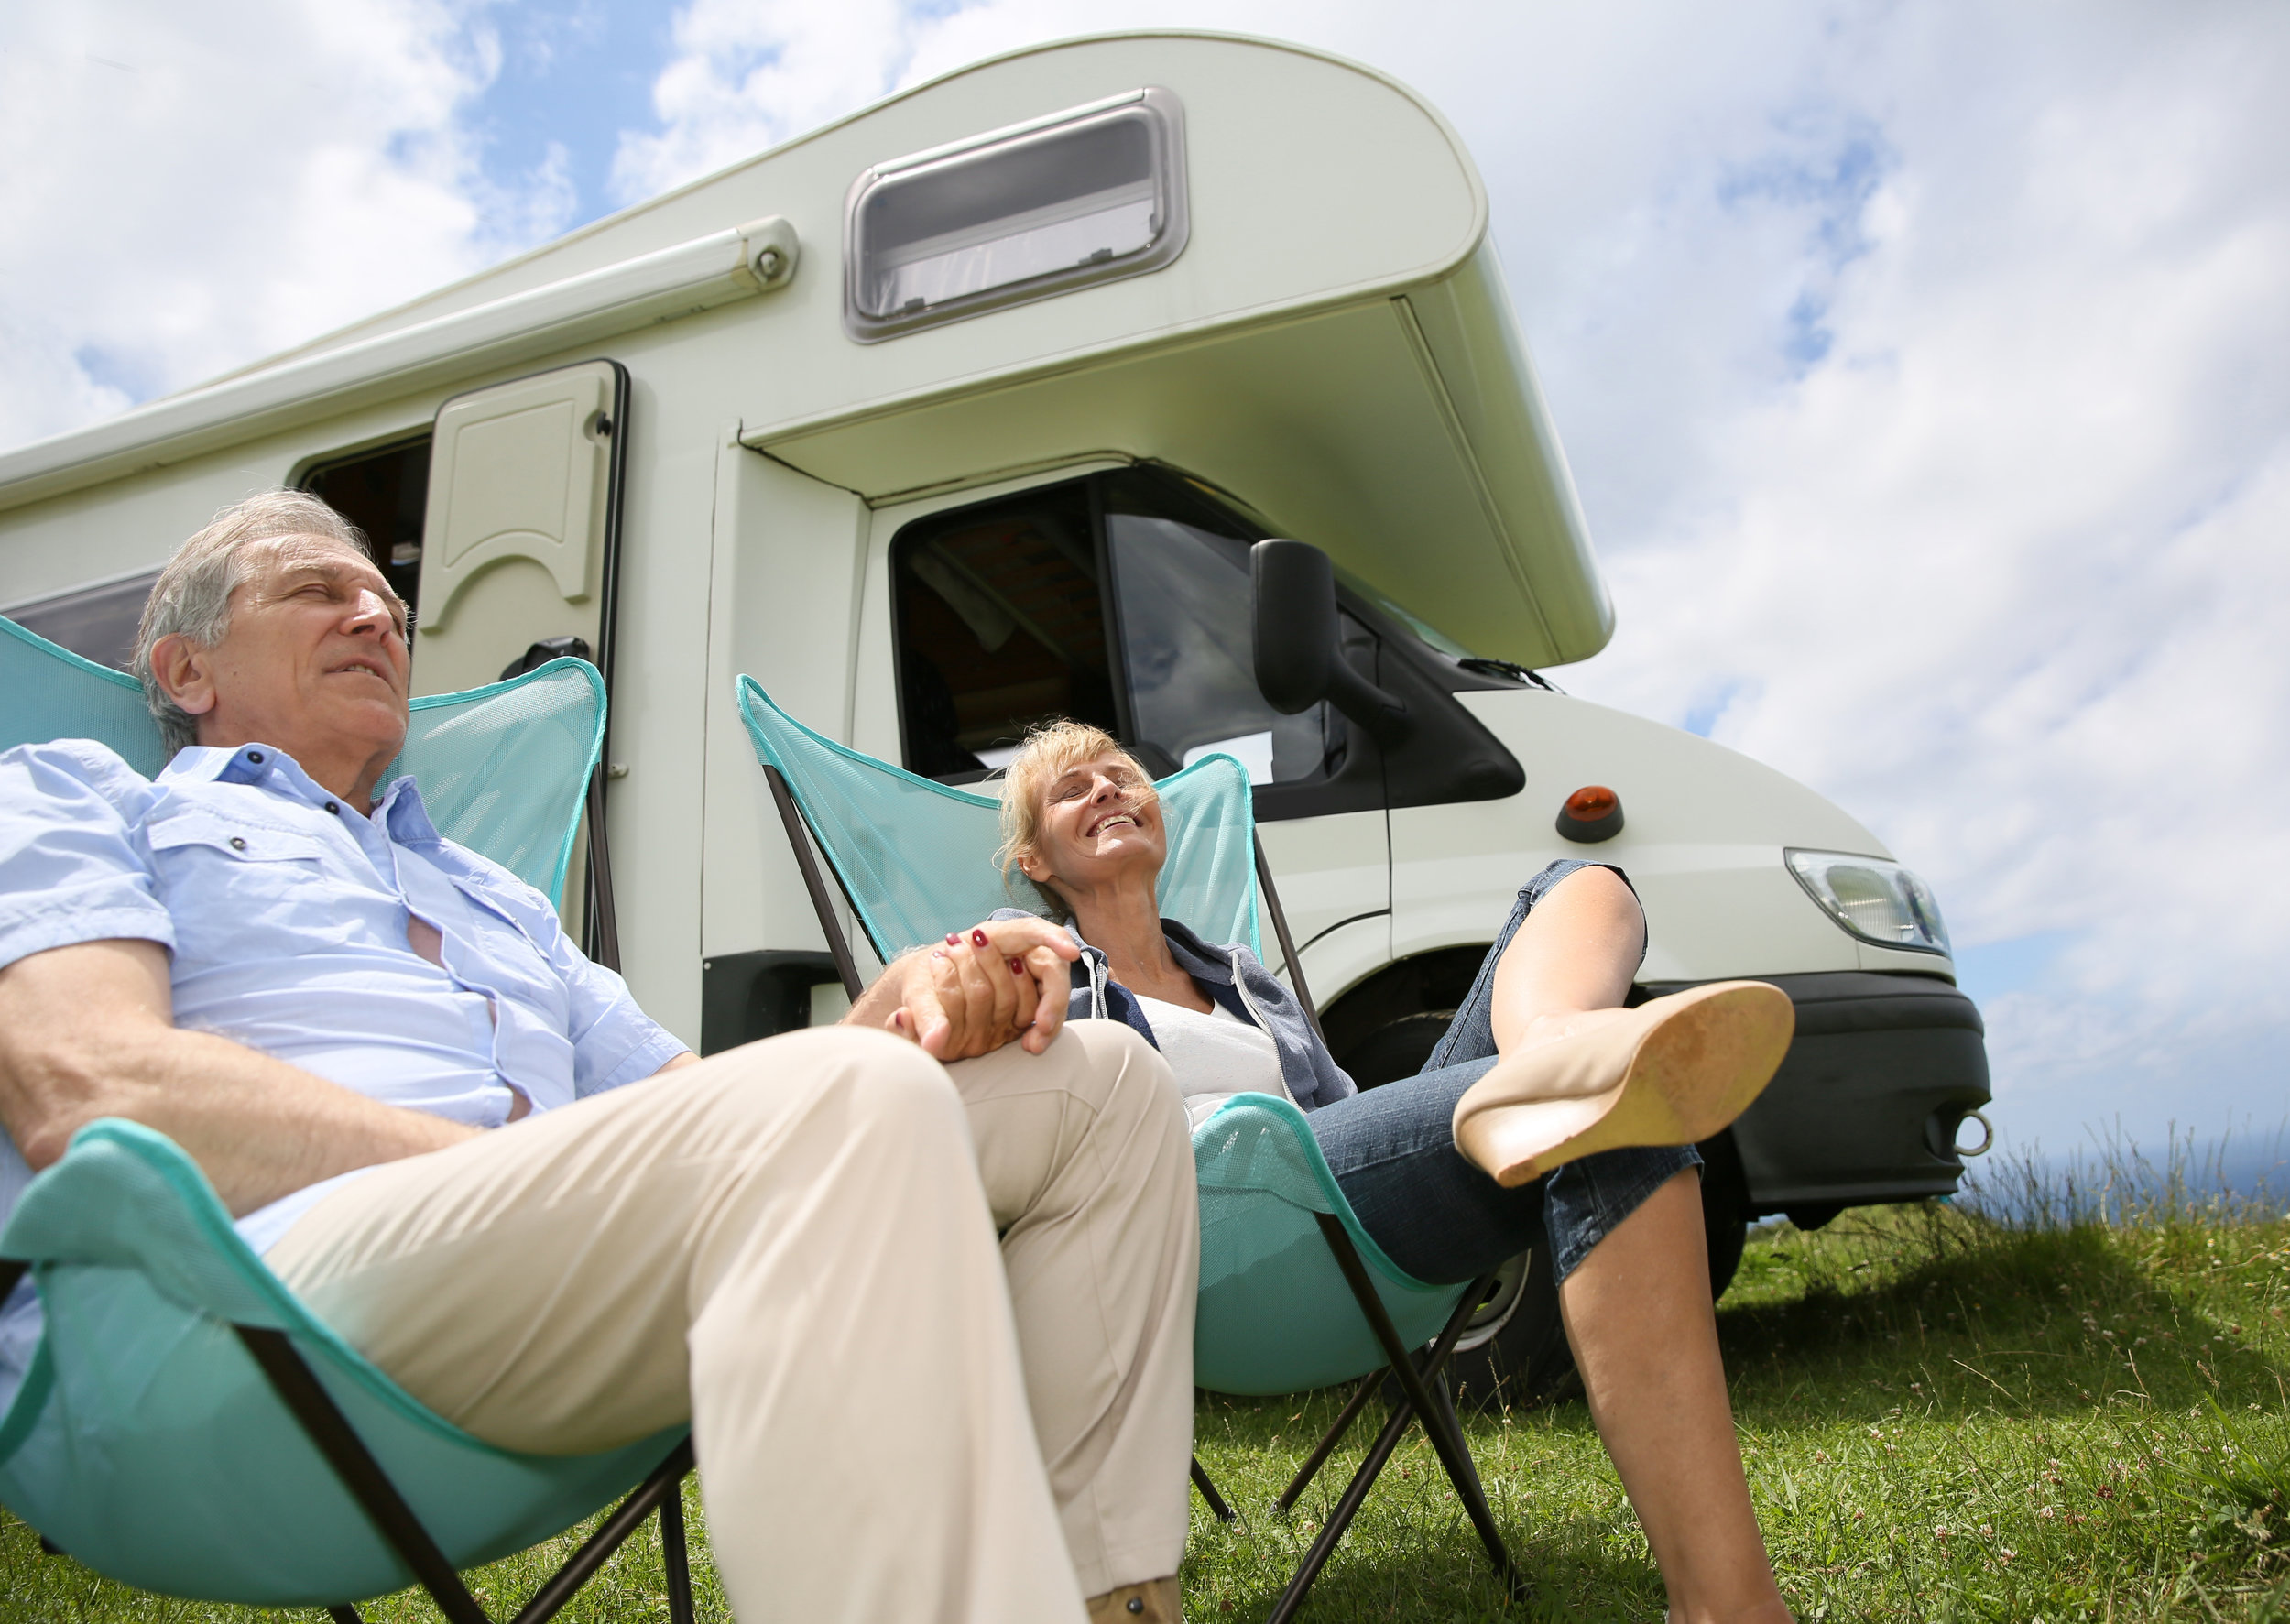 RECREATION INSURANCE Insurance coverage for your boat, ATV, travel trailer or motor home.  Farmers offers a full range of  RV policies  designed to fit your specific needs.